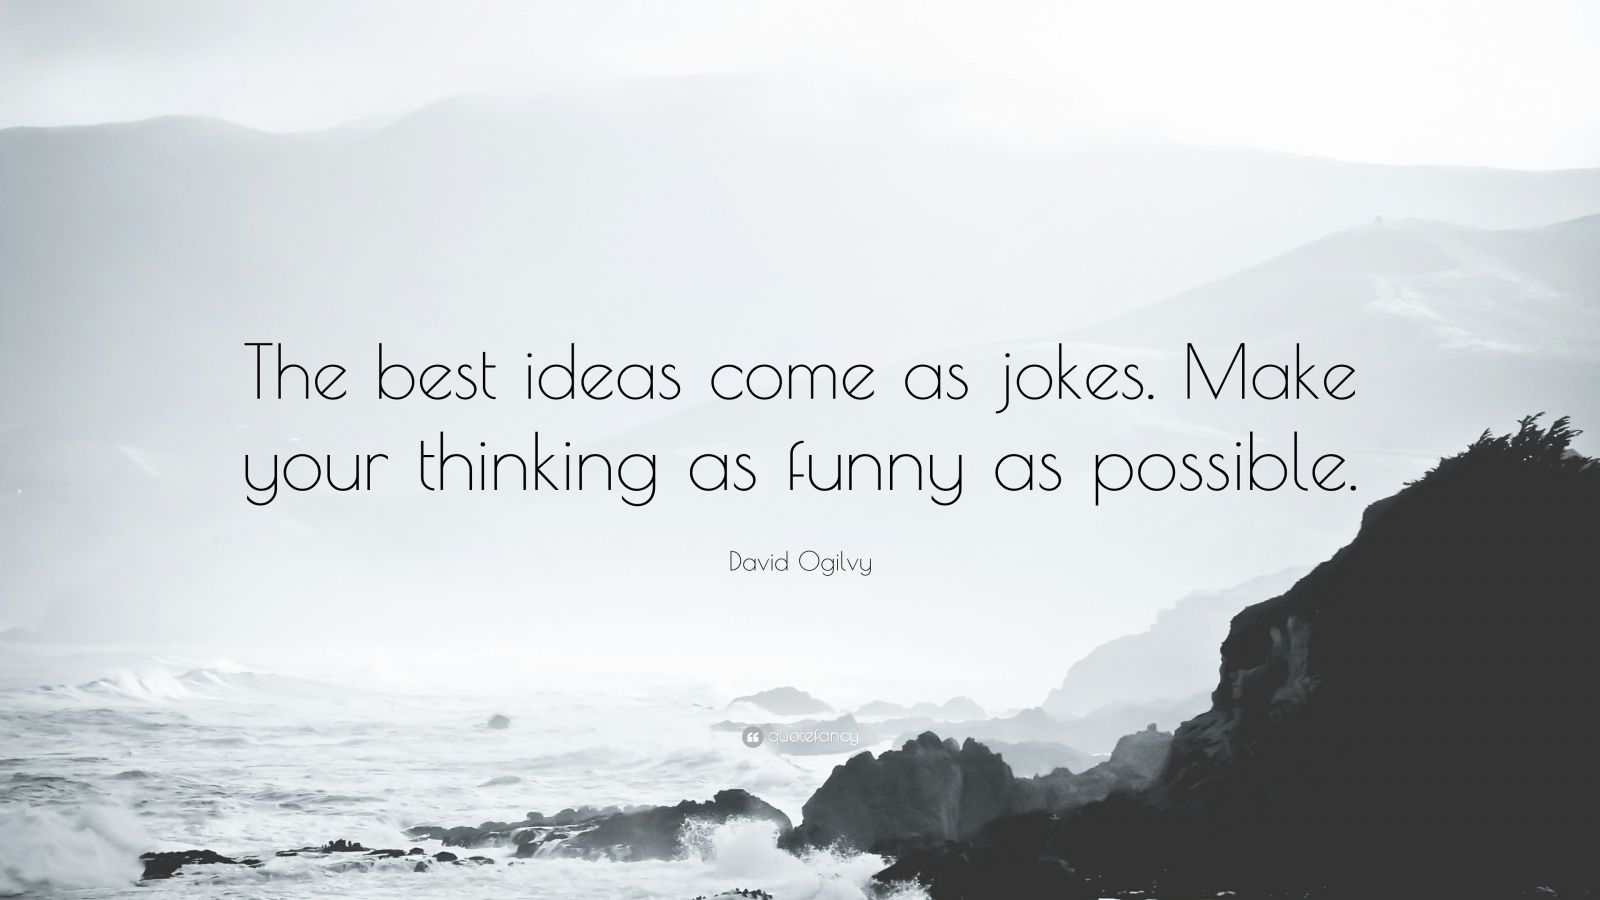 David Ogilvy Quotes Awesome David Ogilvy Quotes 100 Wallpapers  Quotefancy